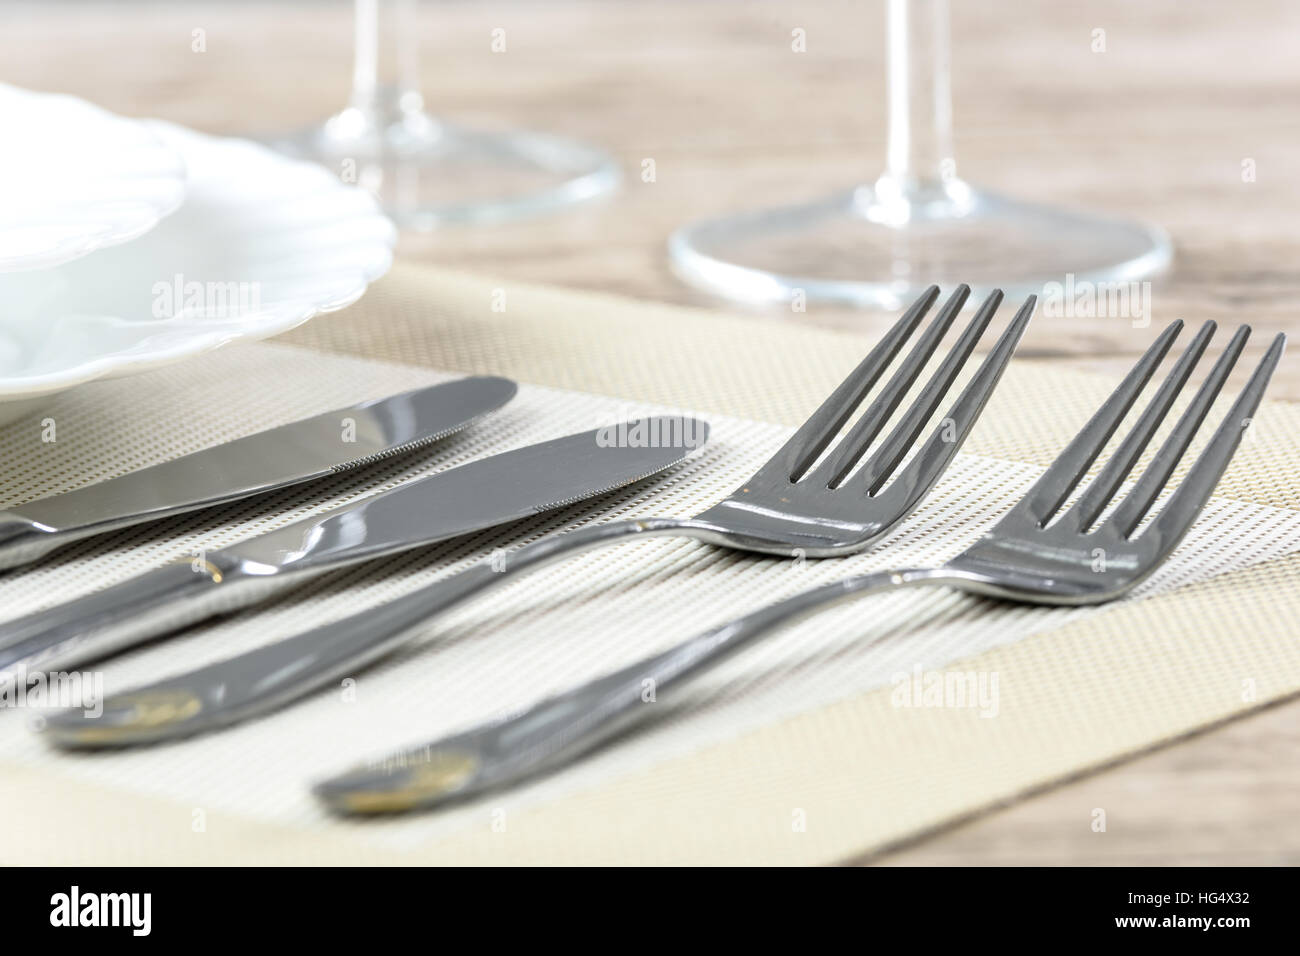 Table setting in a restaurant. Cutlery 65